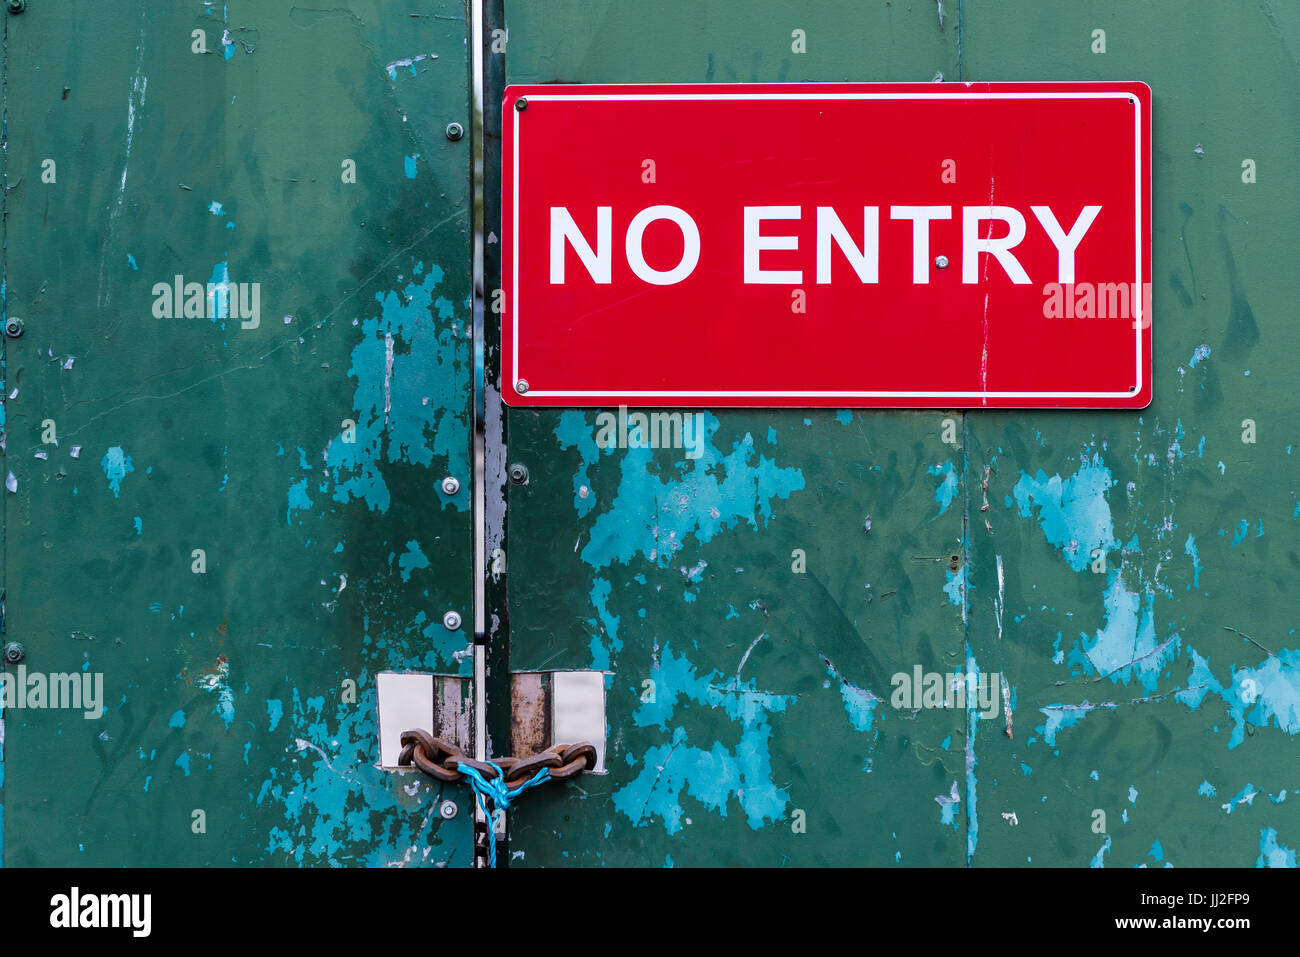 Locked steel door at an industrial site saying 'No Entry' - Stock Image